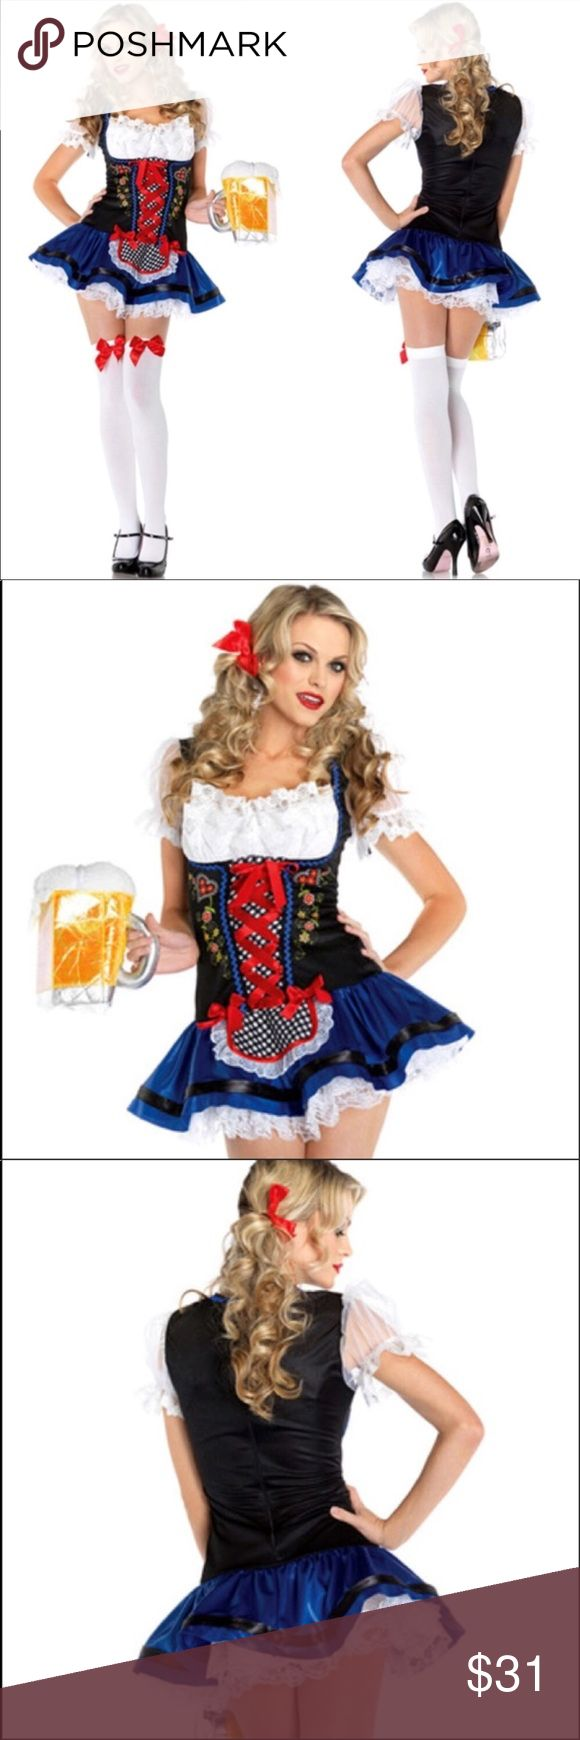 Sexy Oktoberfest Beer Waitress Costume Make all your friends jealous with this sexy Oktoberfest Beer Waiteress Costume. Only worn once! Costume has been washed. The lining on the color started to unravel due to being washed. Also, the heart appliqué on the right side of corset is starting to peel off due to being washed (See picture 5-7.) Other than those two minor flaws, the costume is in excellent condition. I also have the matching Beer purse for sale on another listing if interested…